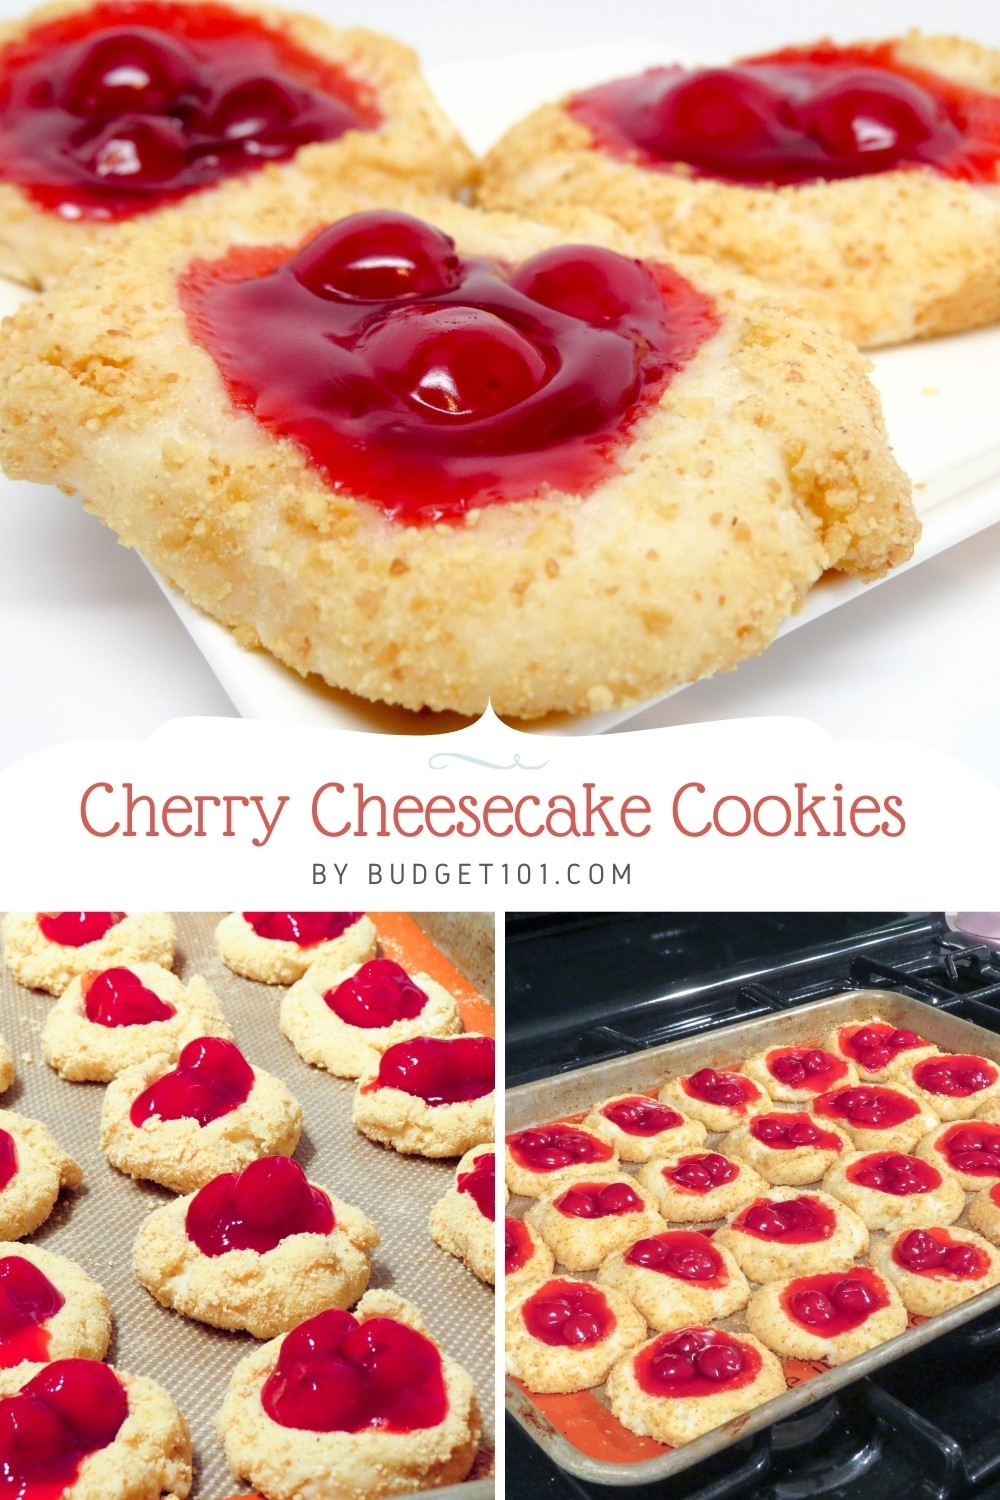 Bright red saucy cherries resting atop a cheesecake cookie platform dredged in graham cracker crumbs. Not only are they incredibly festive, but they're also one of the easiest holiday cookies to make! #CherryCheesecake #Christmas #ChristmasCookies #MYO #DirtCheap #HolidayBaking #Christmastime #Budget101 #MYO